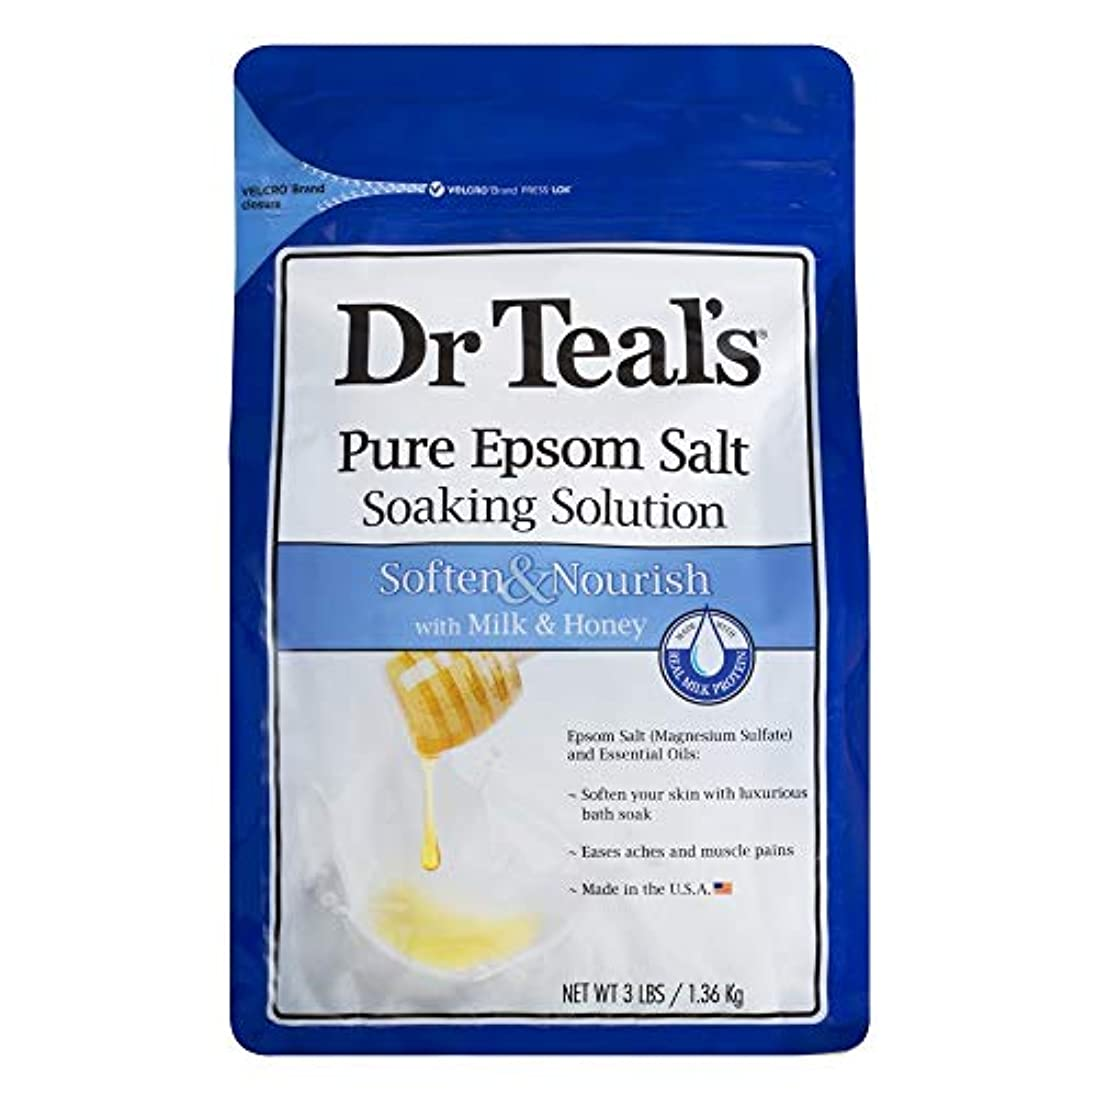 水族館南アメリカ債権者Dr Teal's Epsom Salt Soaking Solution, Soften & Nourish, Milk and Honey, 3lbs